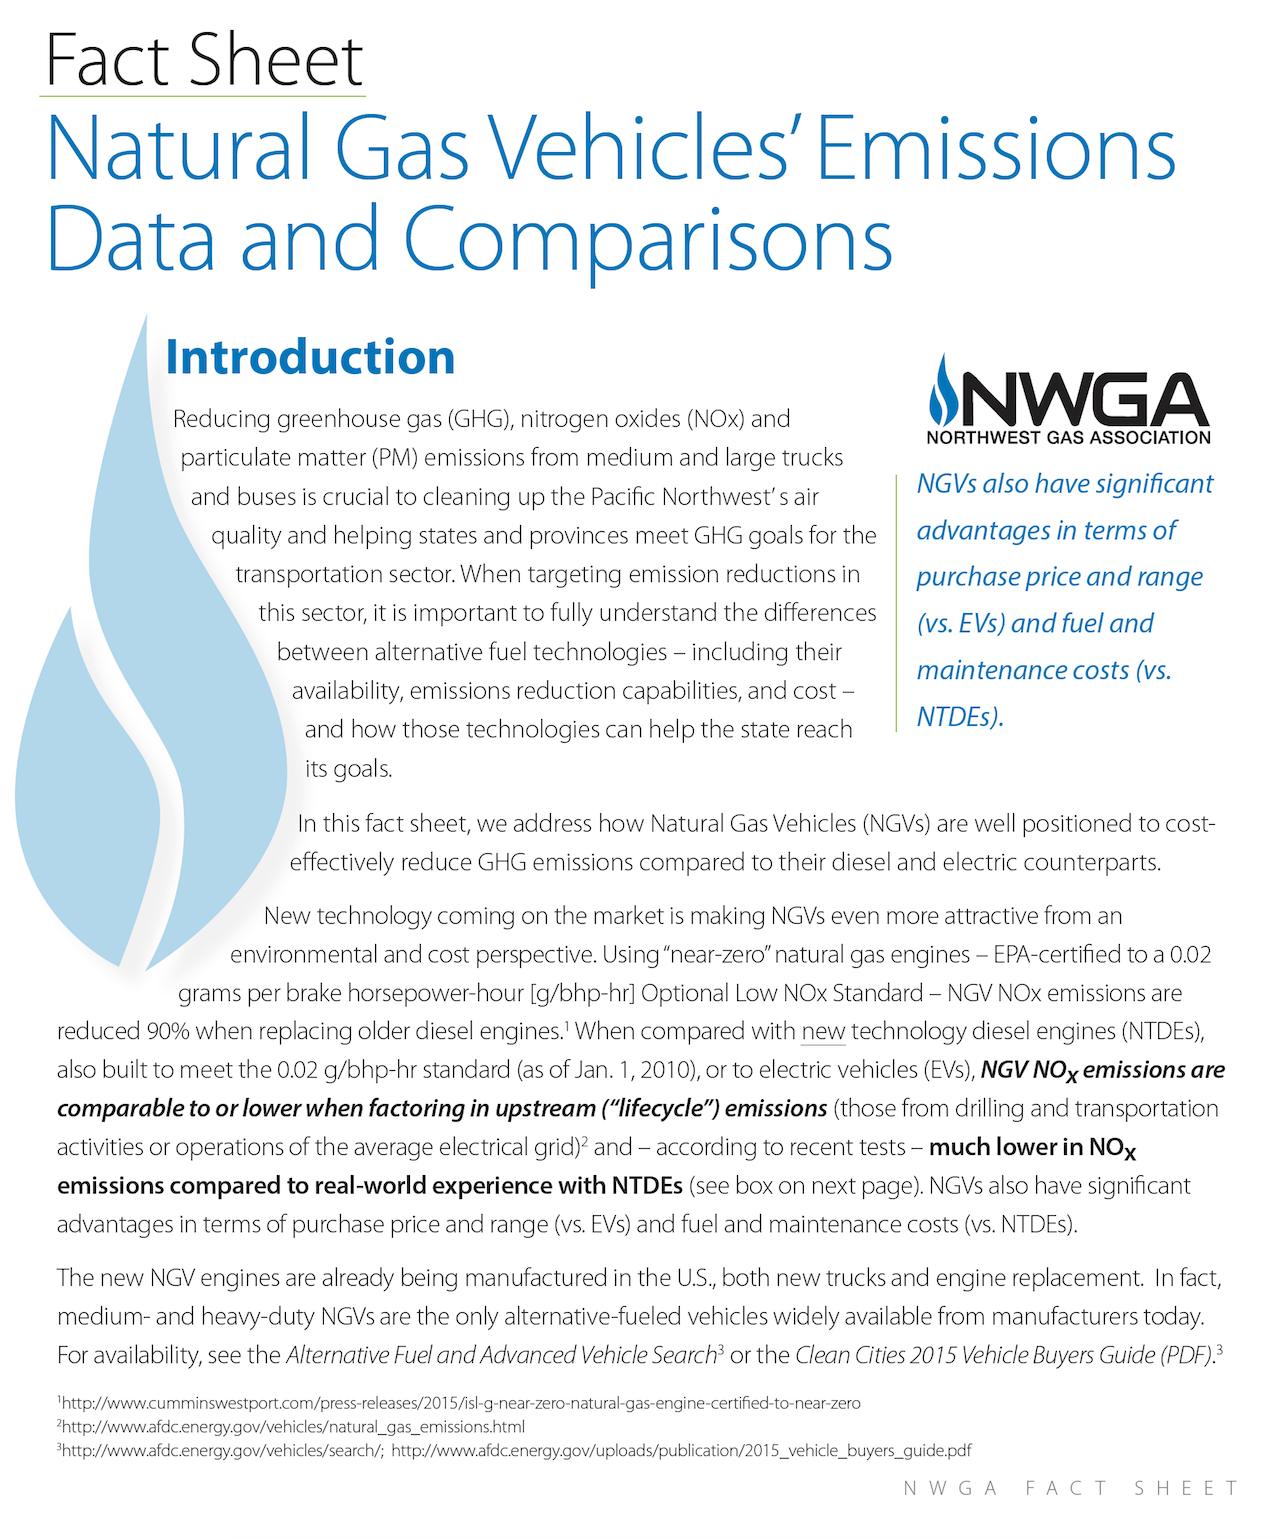 Reducing greenhouse gas ghg nitrogen oxides nox and particulate matter pm emissions from medium and large trucks and buses is crucial to cleaning up